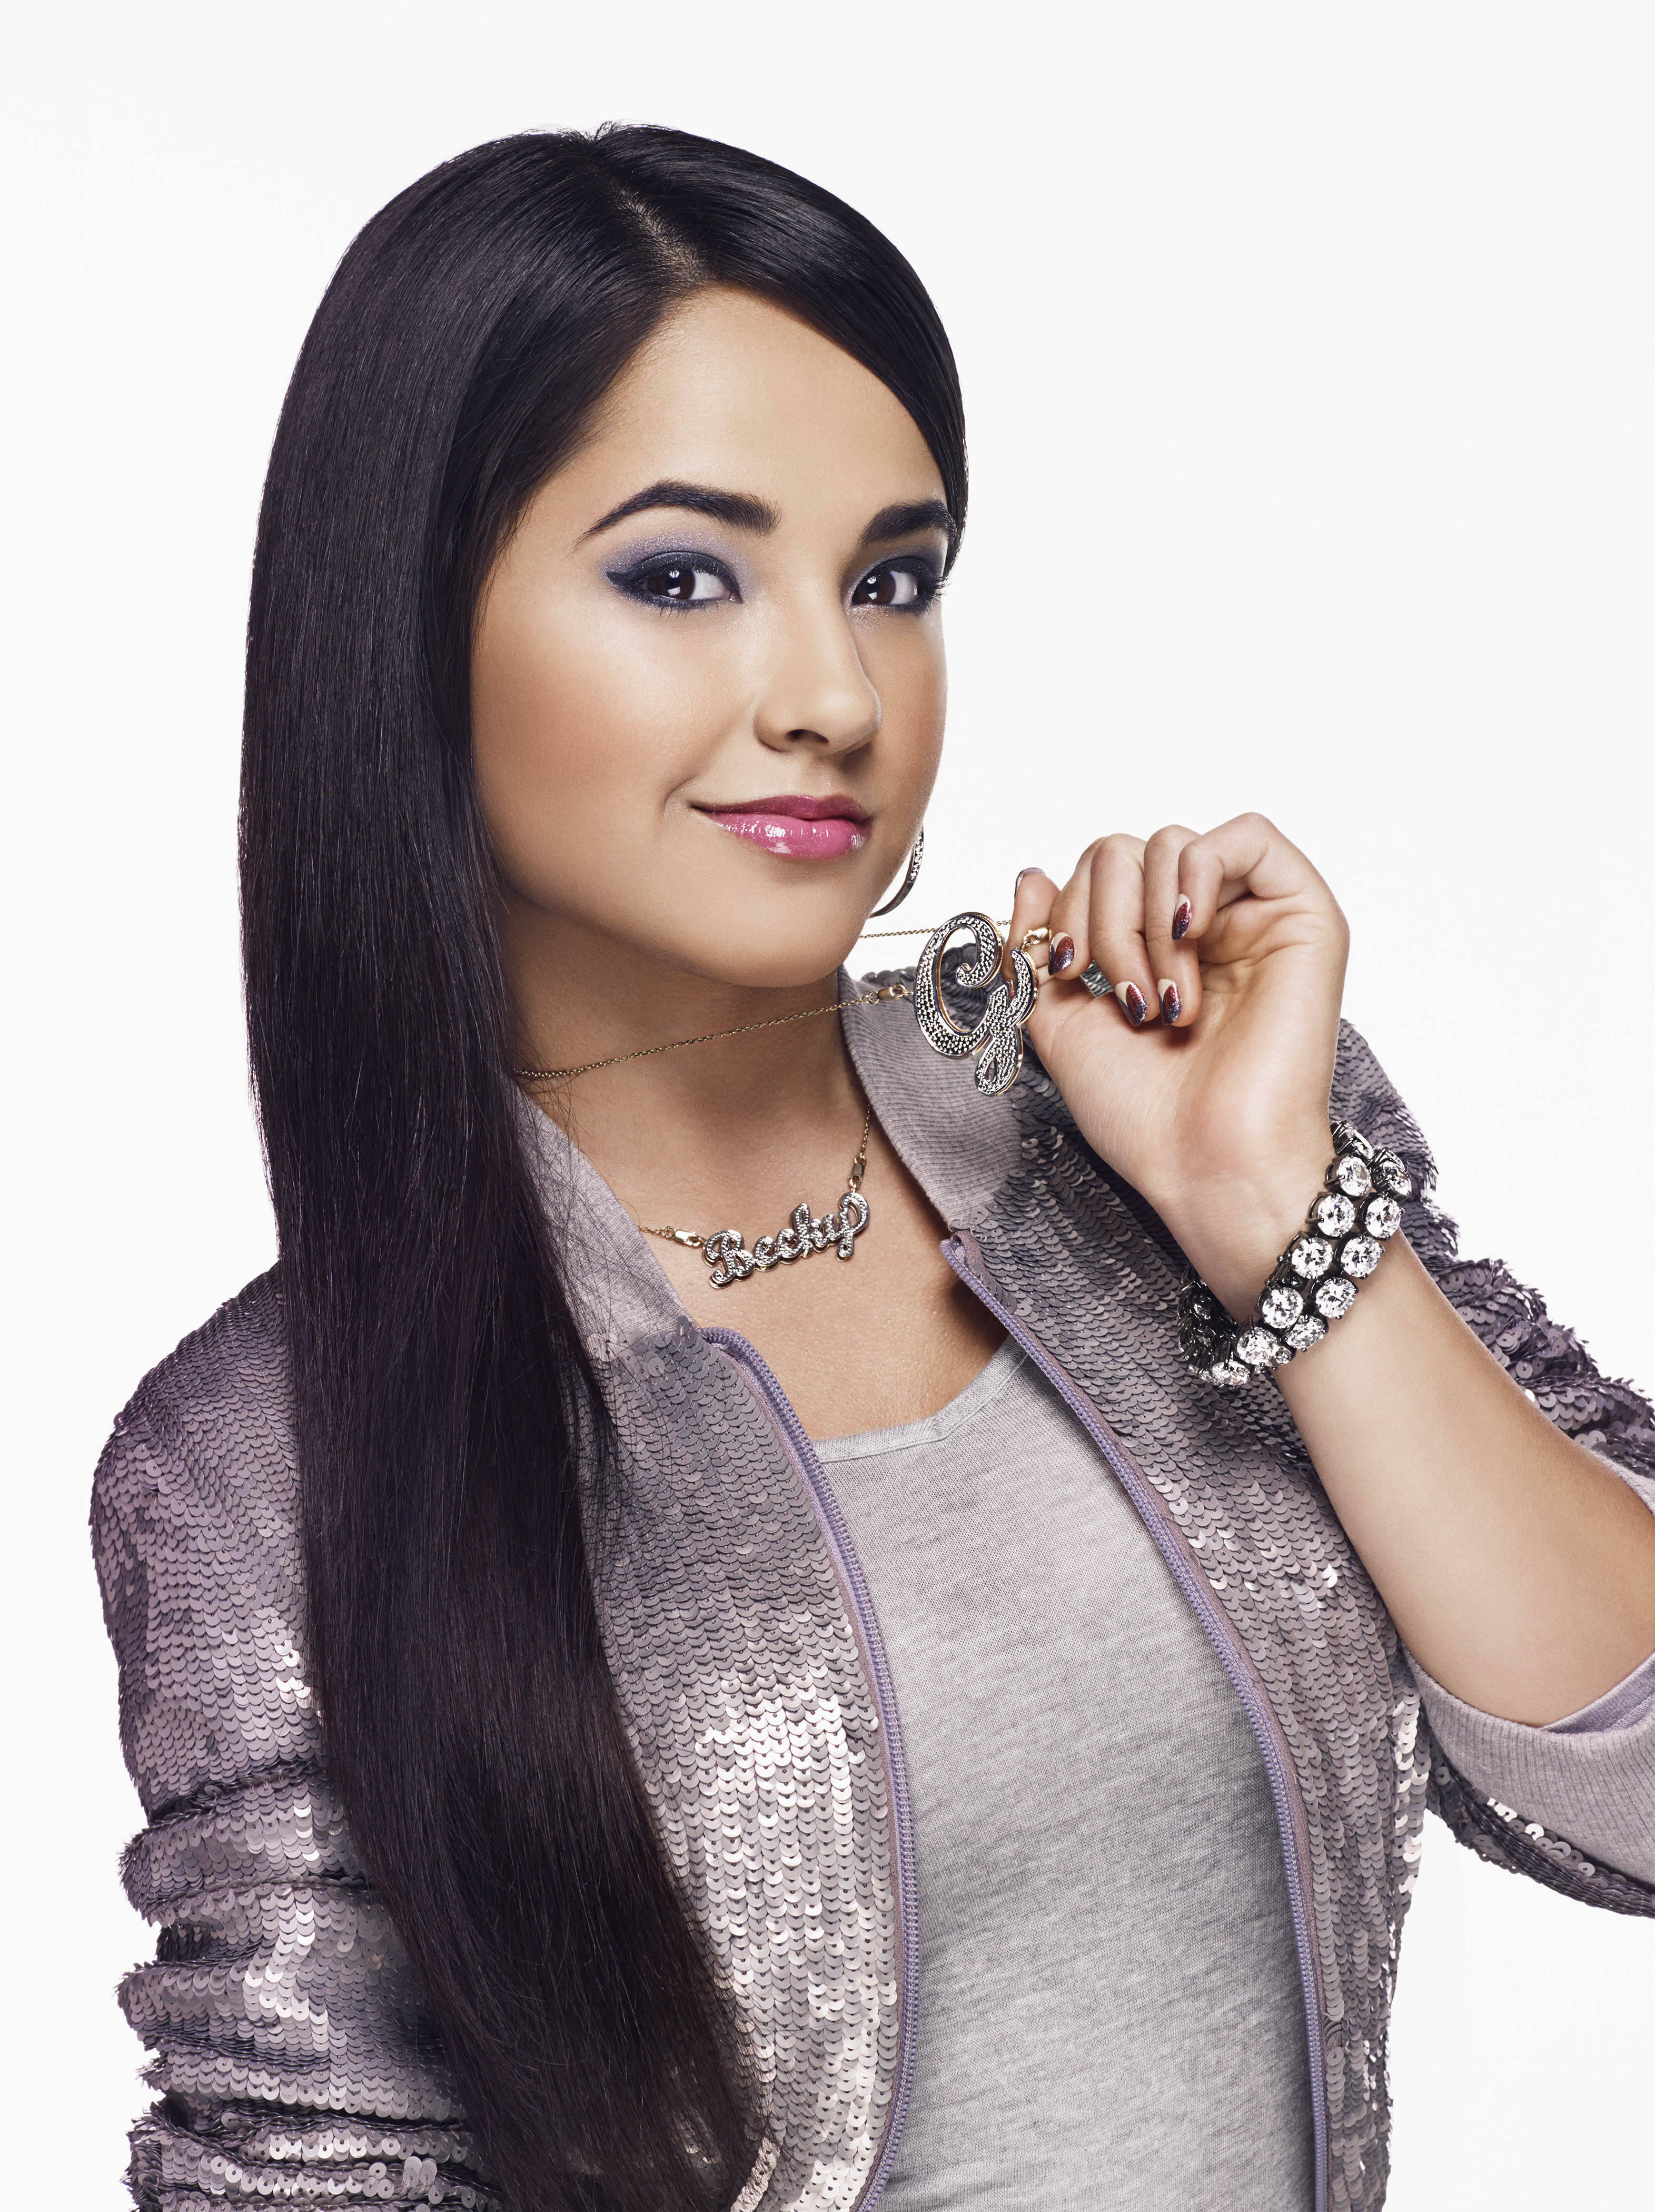 COVERGIRL signs rising triple-threat: 16-year-old singer, songwriter & rapper Becky G. Mexican-American superstar brings beauty, beats and COVERGIRL confidence to every block. (Photo credit: COVERGIRL)